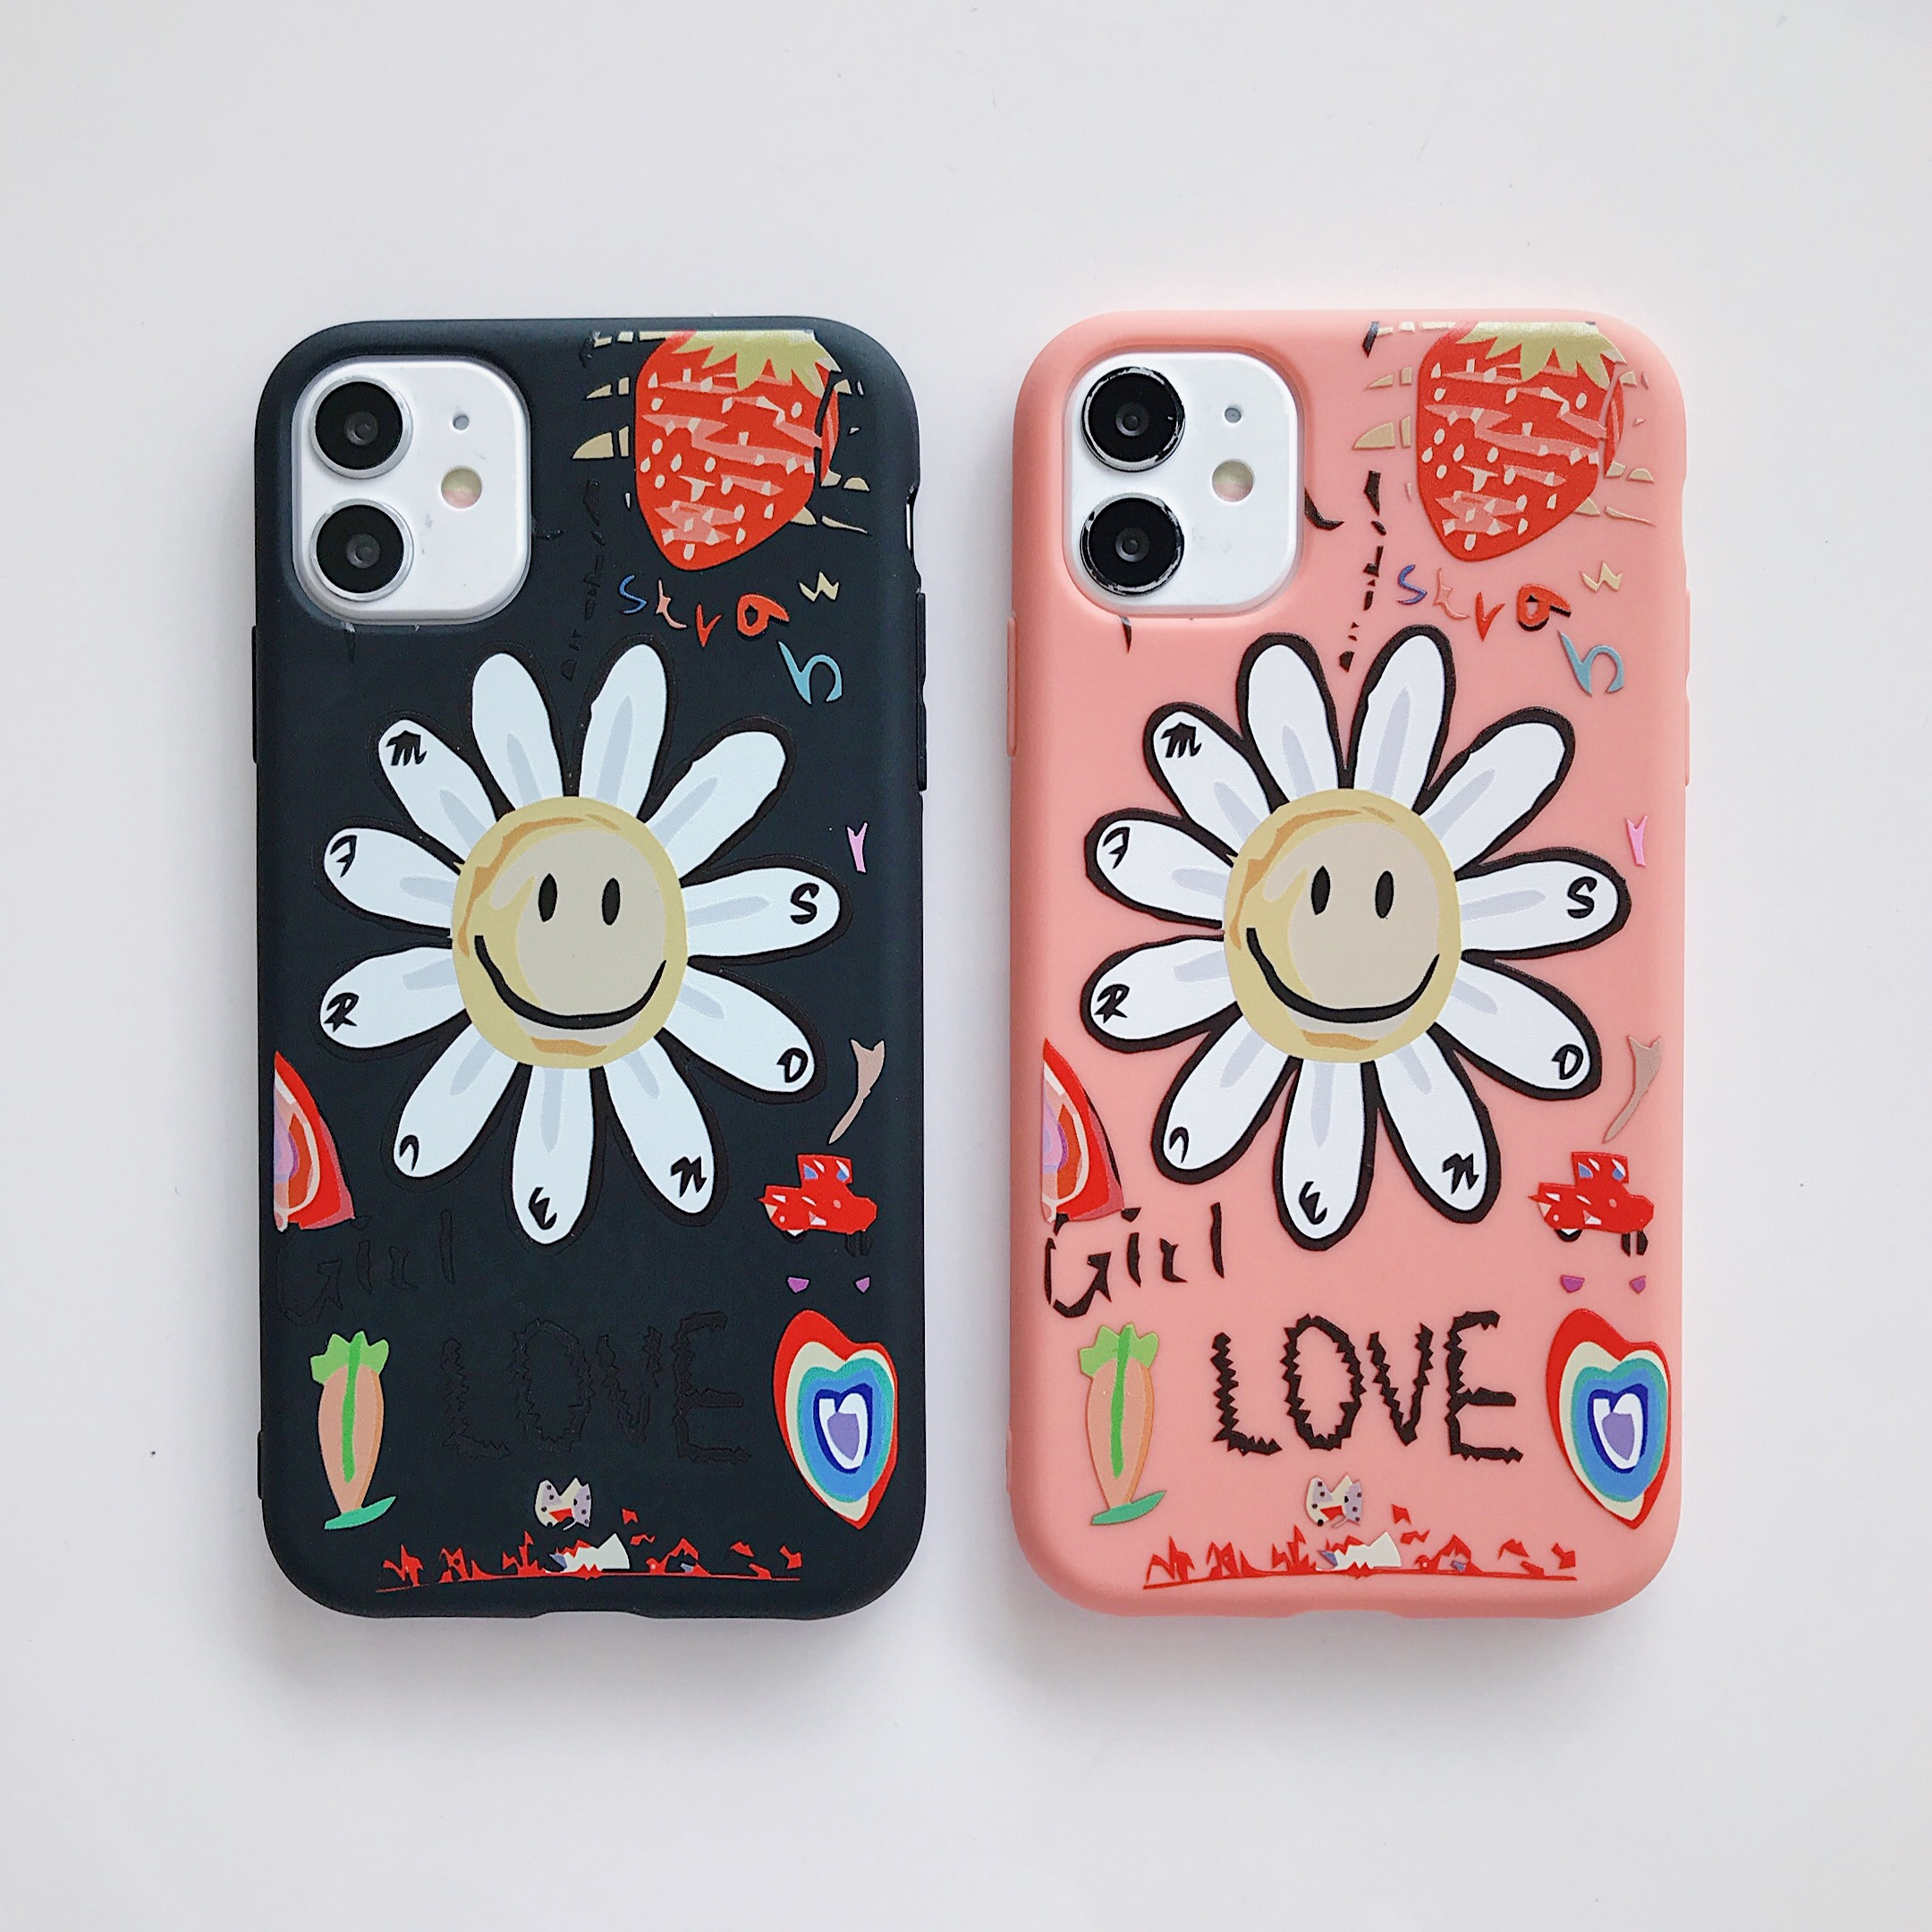 Cute Cartoon Lovely Sunflower Phone Case For iPhone 11 Pro Max 7 8 Plus XR XS Max X 6S Plus Soft TPU Silicone Back Cover Shell